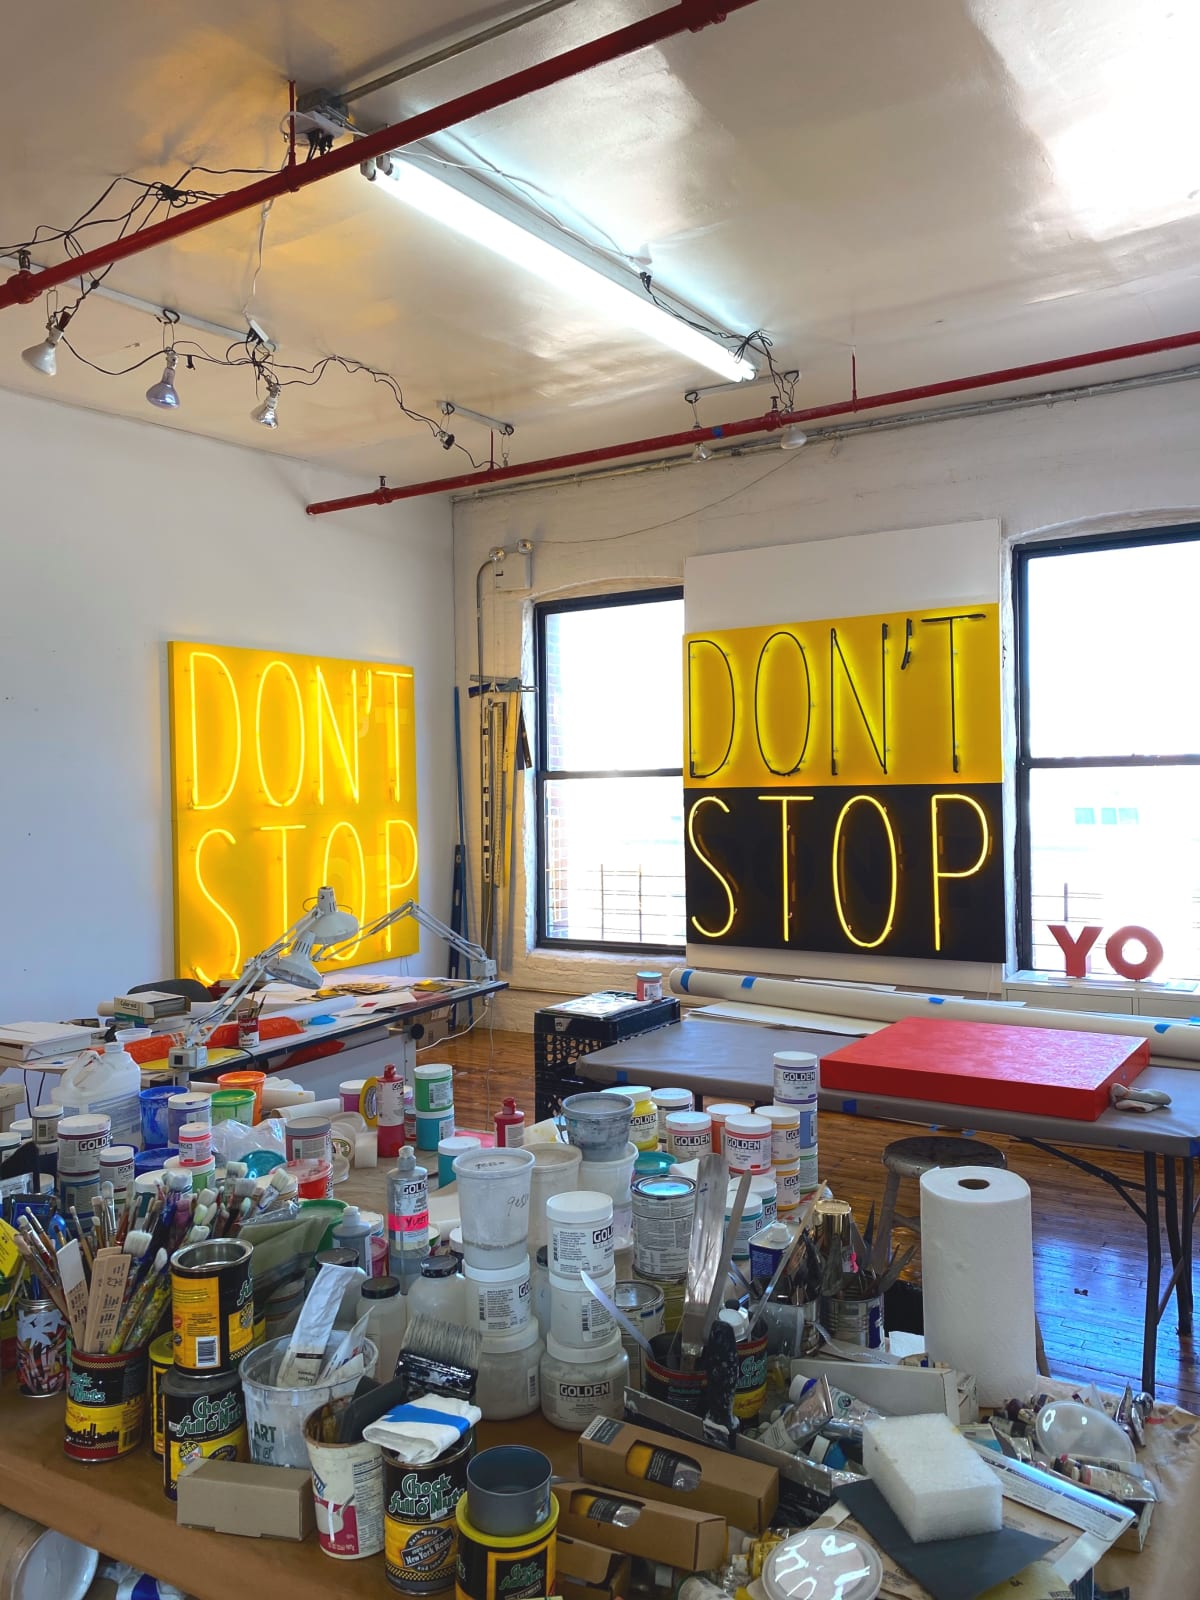 Deborah Kass' studio in Brooklyn, NY. 2020 (pictured: DON'T STOP 3, 2020 and DON'T STOP 1, 2020)